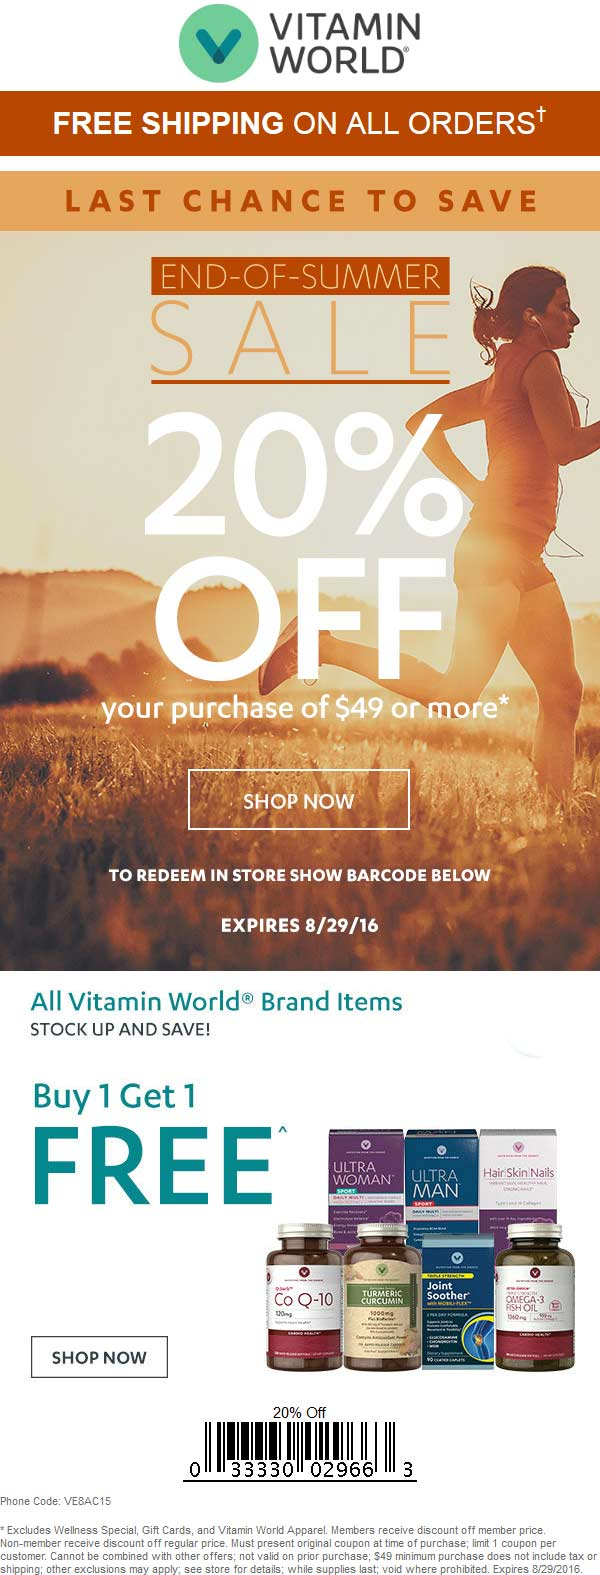 Vitamin World Coupon June 2017 20% off $49 & more today at Vitamin World, ditto online